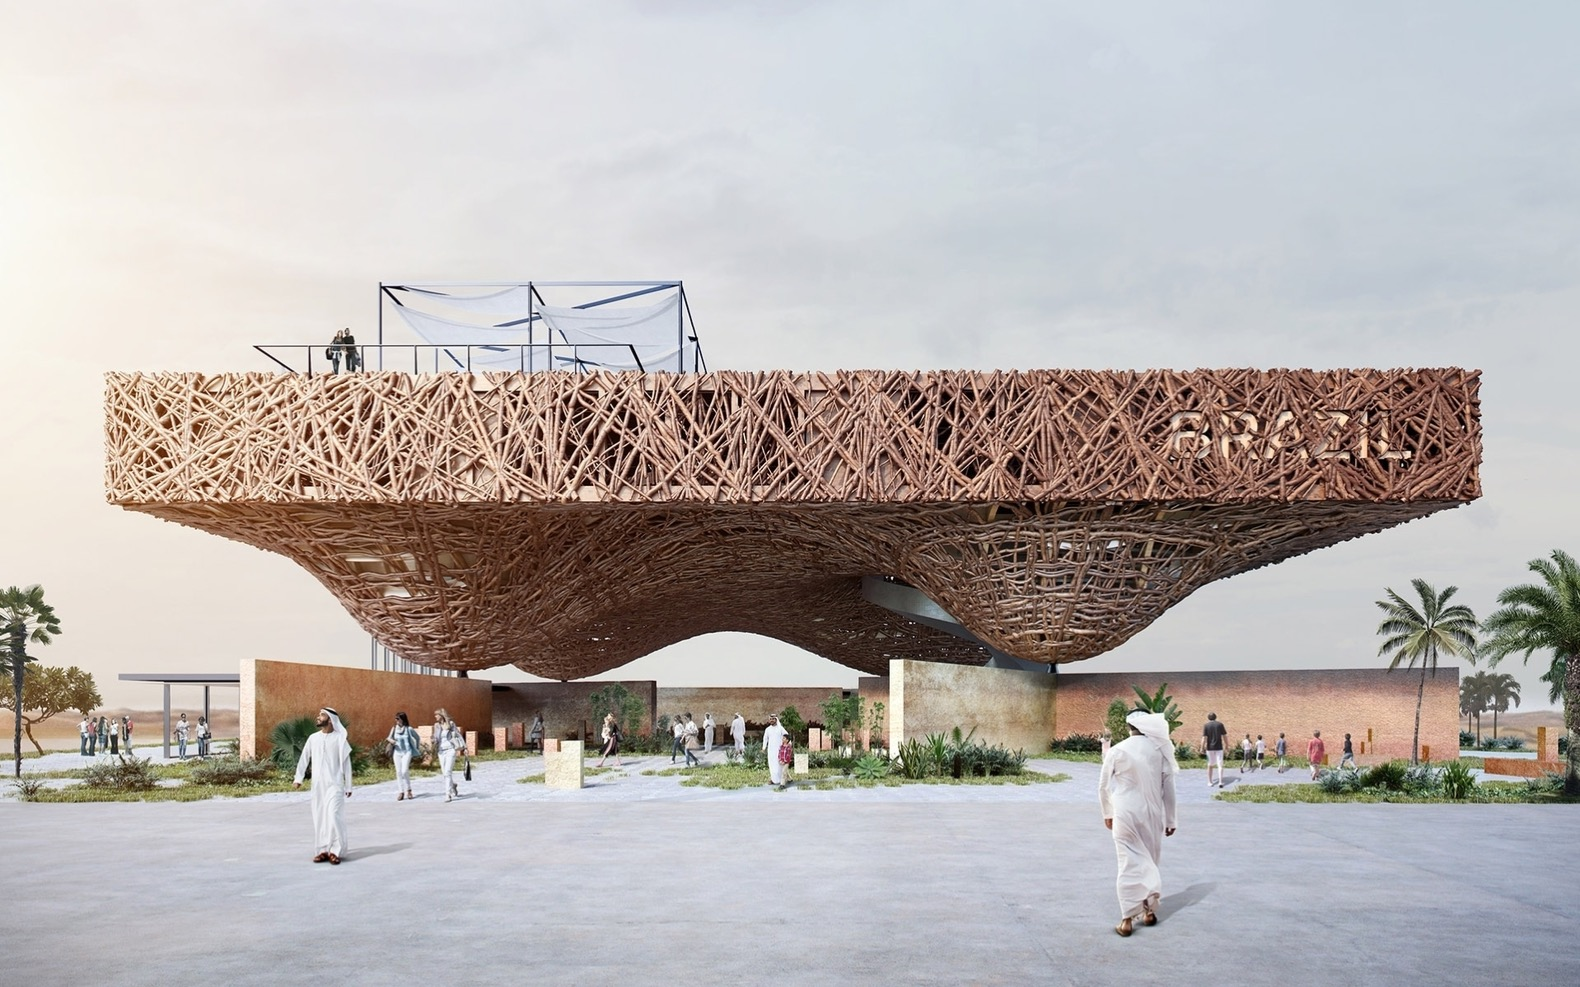 Energy-producing pavilion proposal for Expo 2020 mimics Brazil's biomes